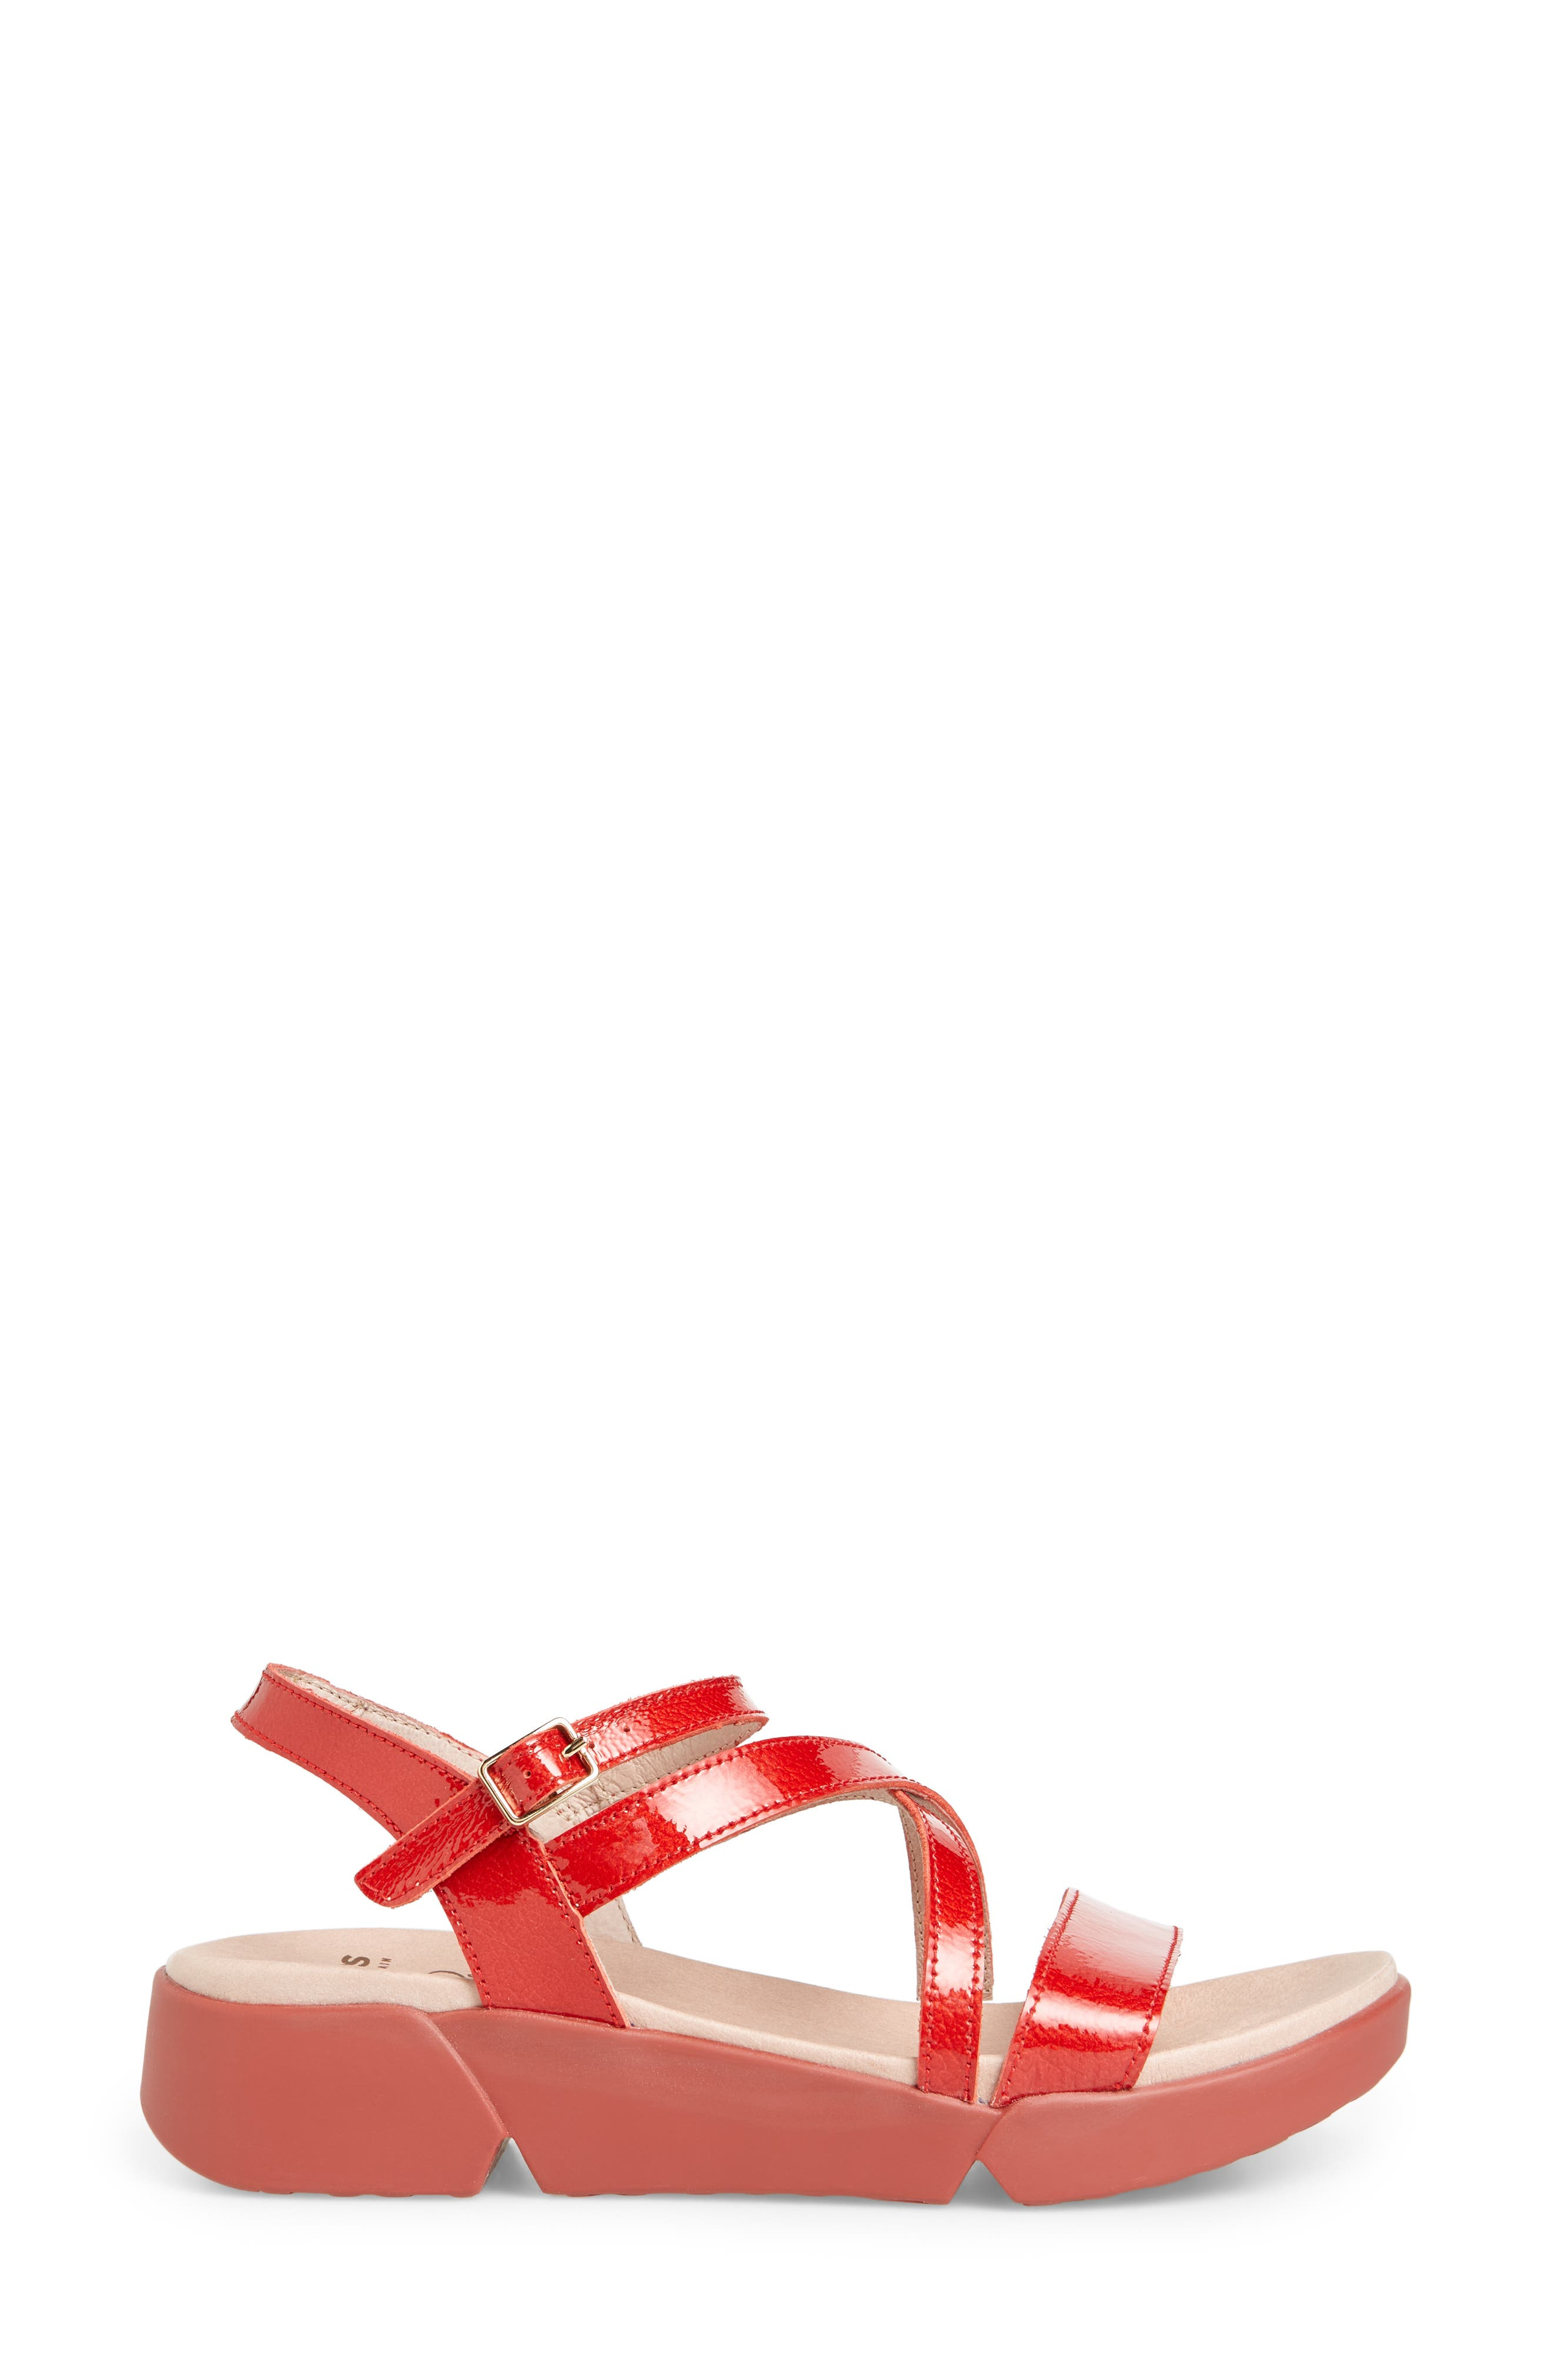 Wedge Sandal,                             Alternate thumbnail 3, color,                             Red Patent Leather